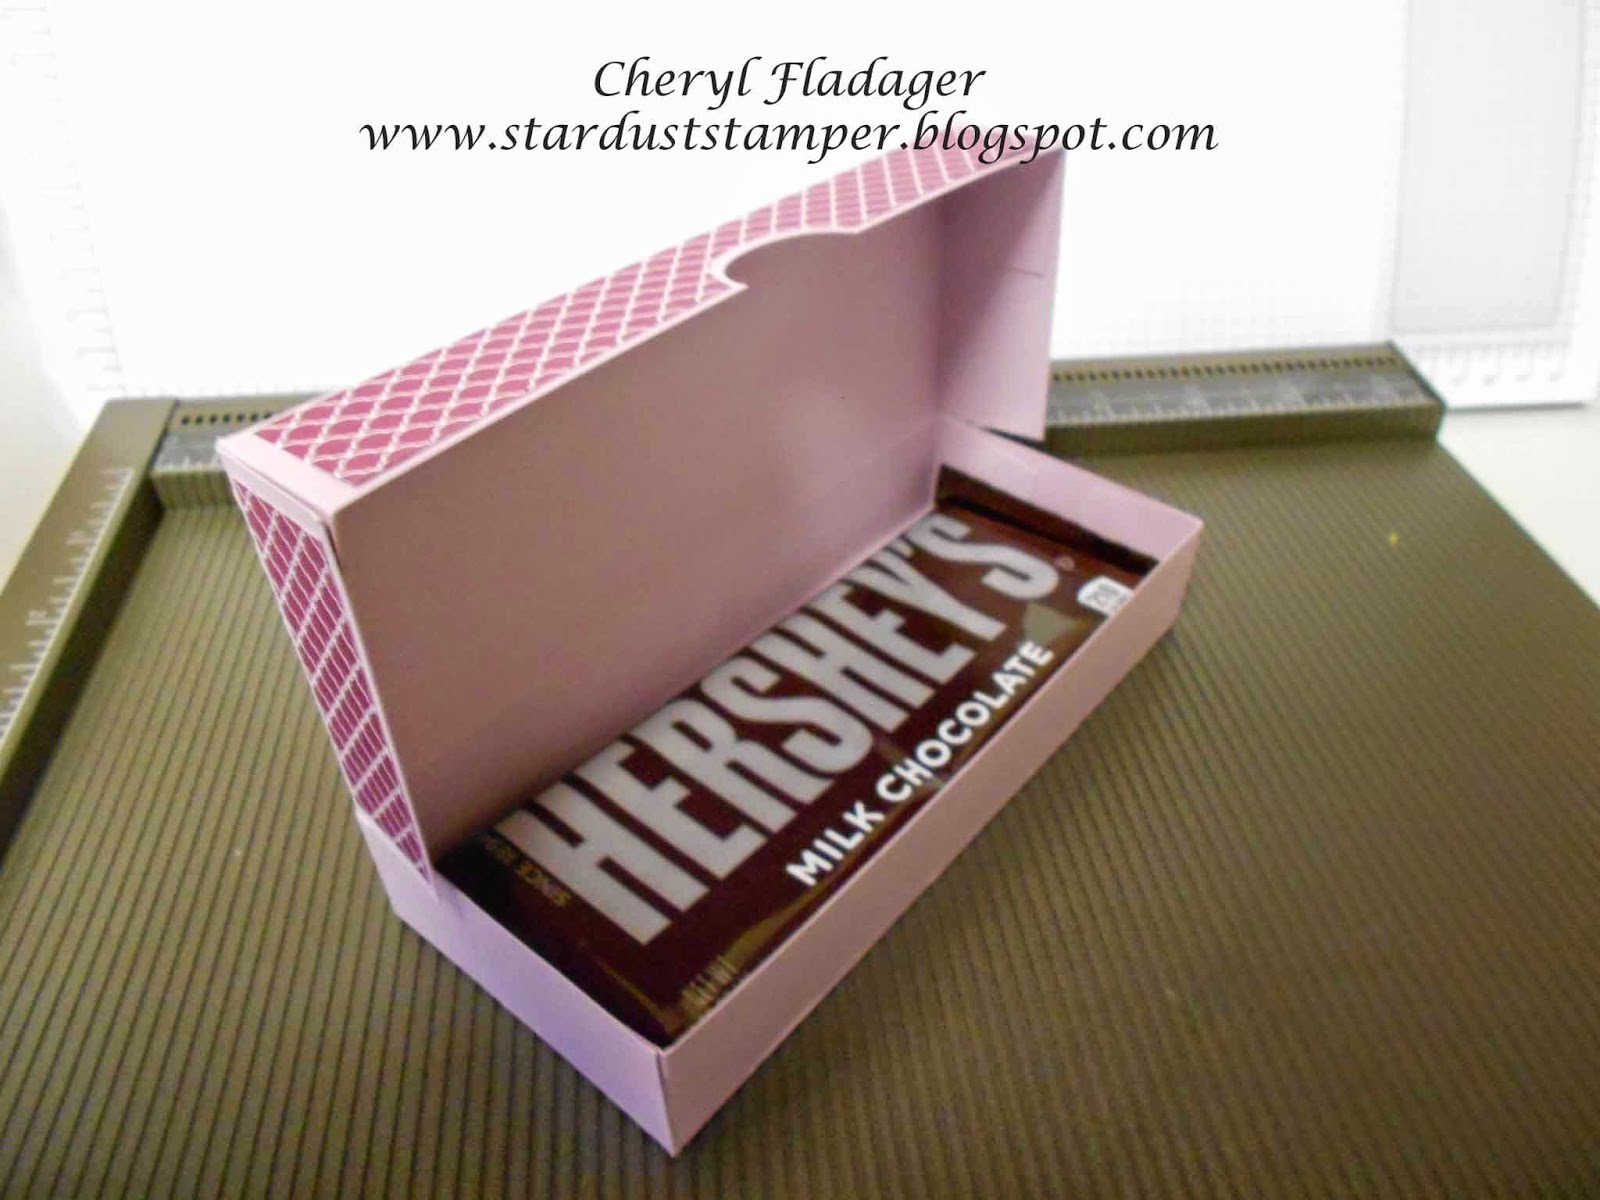 Cheryl Star Dust Stamper Perfect Candy Bar Box Chocolate Fuse Holder I Love The Size Of This Because A Hersheys Fits Perfectly Inside You Could Give Couple Them In Fact If Have Any Questions Please